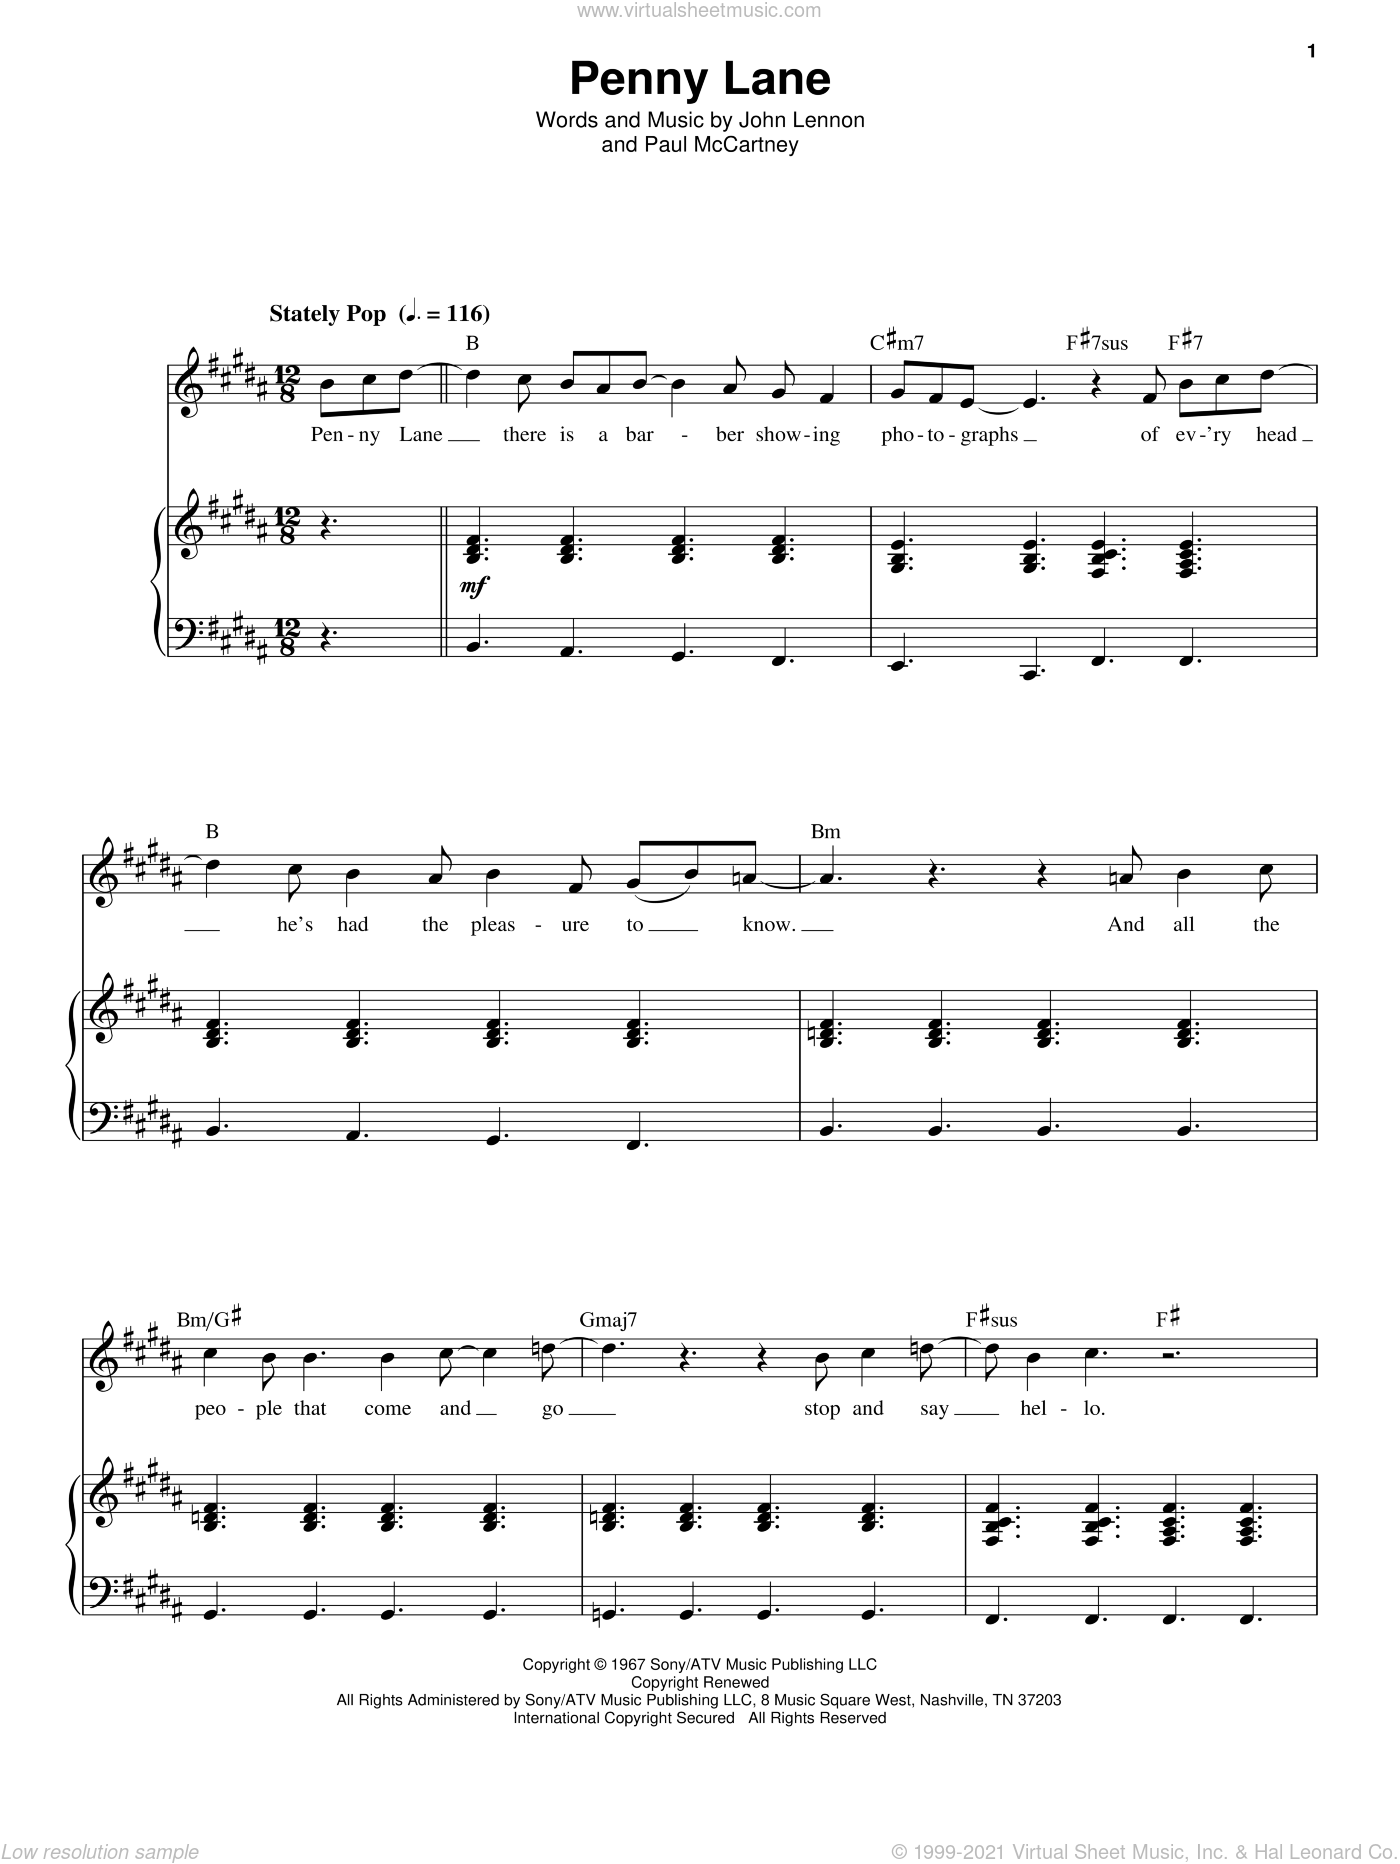 Penny Lane sheet music for voice and piano by The Beatles, John Lennon and Paul McCartney, intermediate skill level